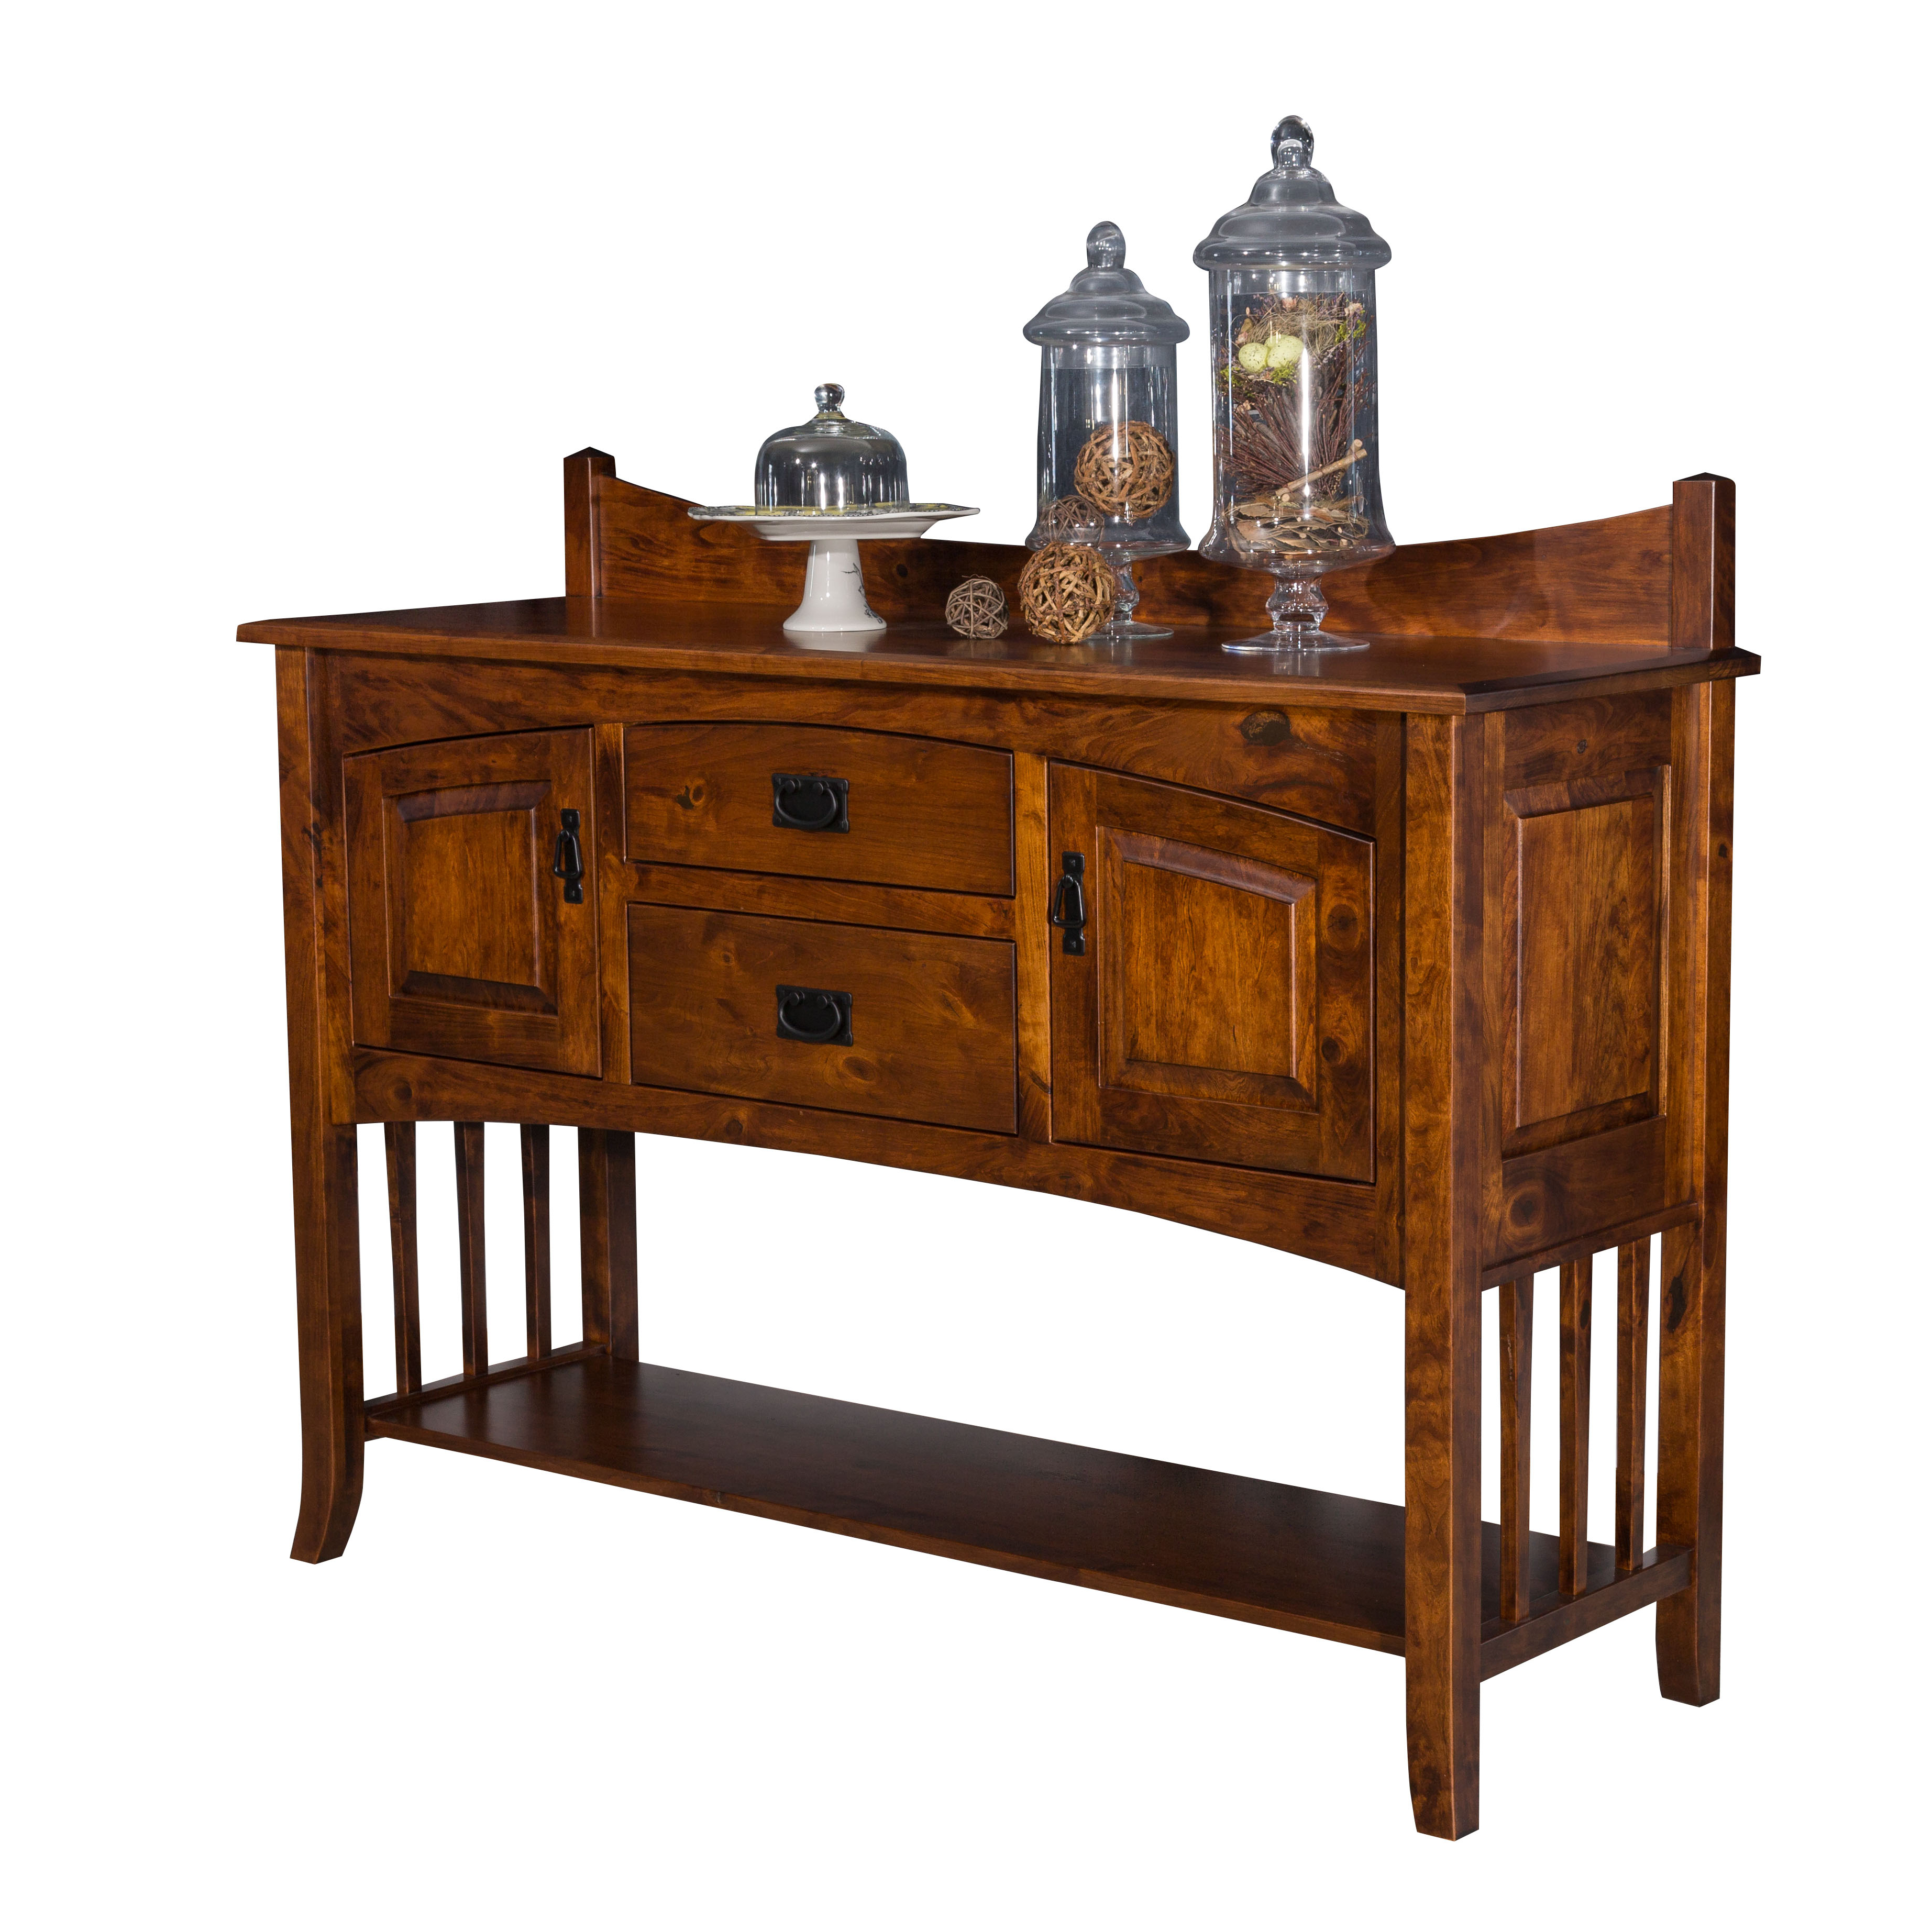 Cambrai Sideboards Pertaining To Recent Products (View 5 of 20)